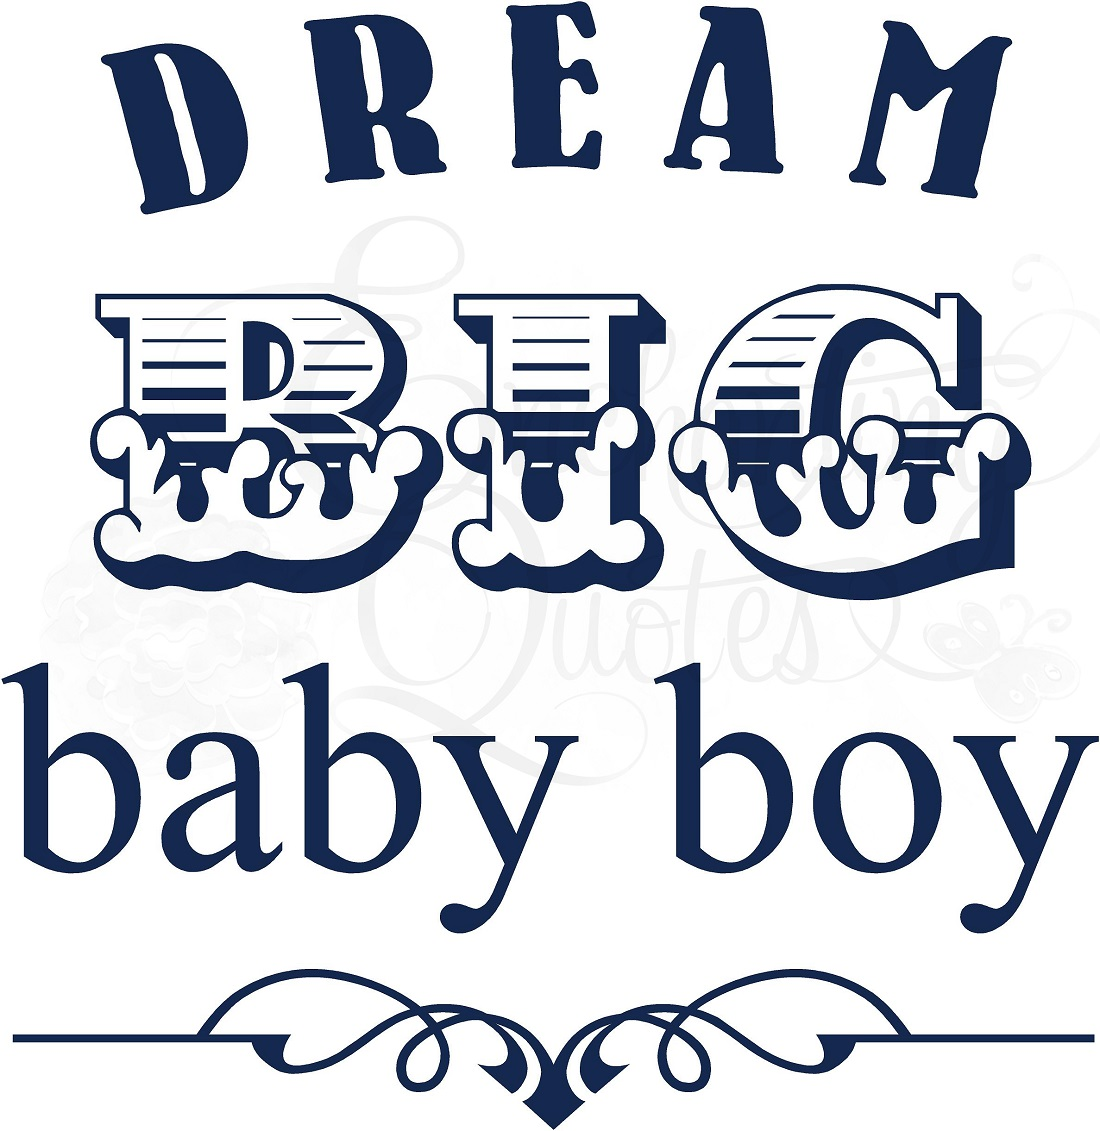 Baby Boy Quotes with Pictures and Cute Sayings About Little Boy's Those babies are always adorable but a baby boy is so cute to handle and he is a bunch of happiness for his parents. A baby boy is such a blessing from above and a future protector for his family.